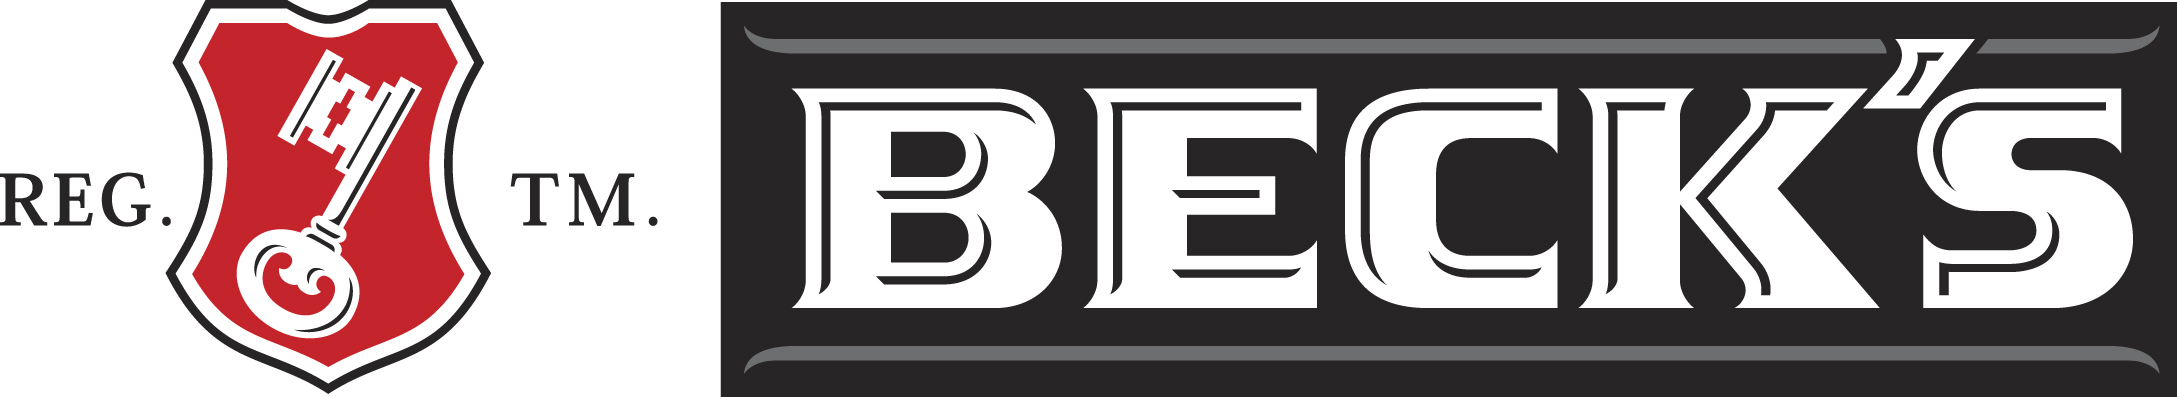 Becks Beer Logo